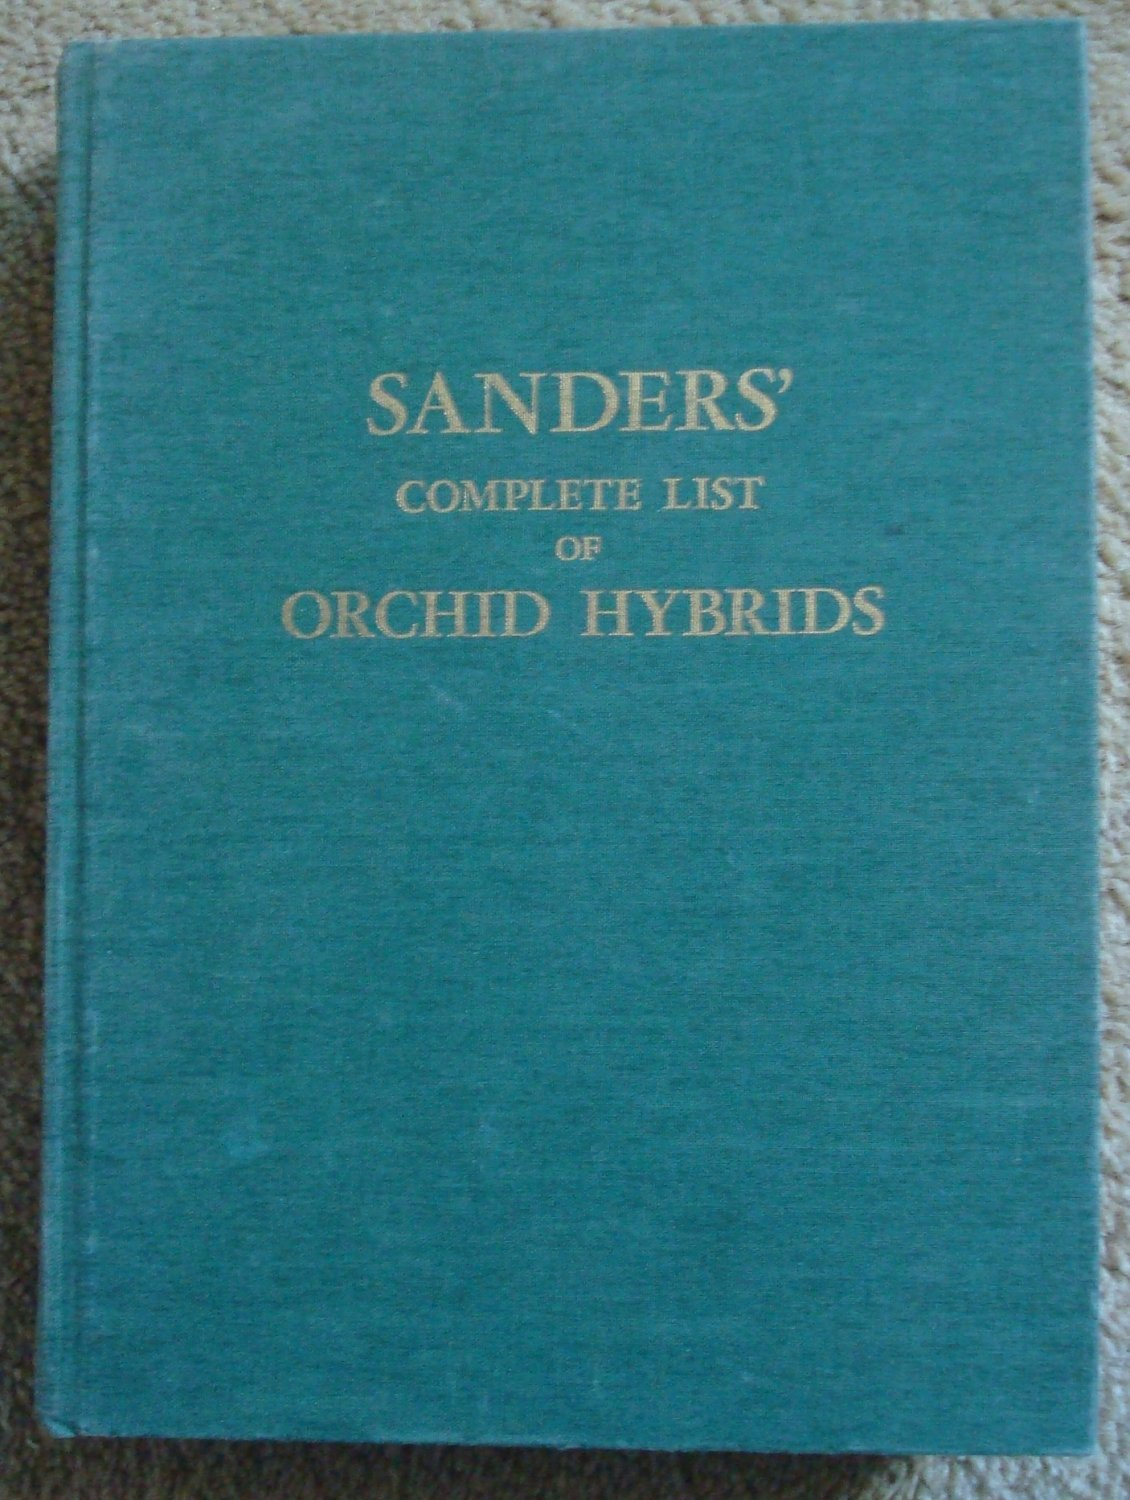 Sanders' Complete List of Orchid Hybrids